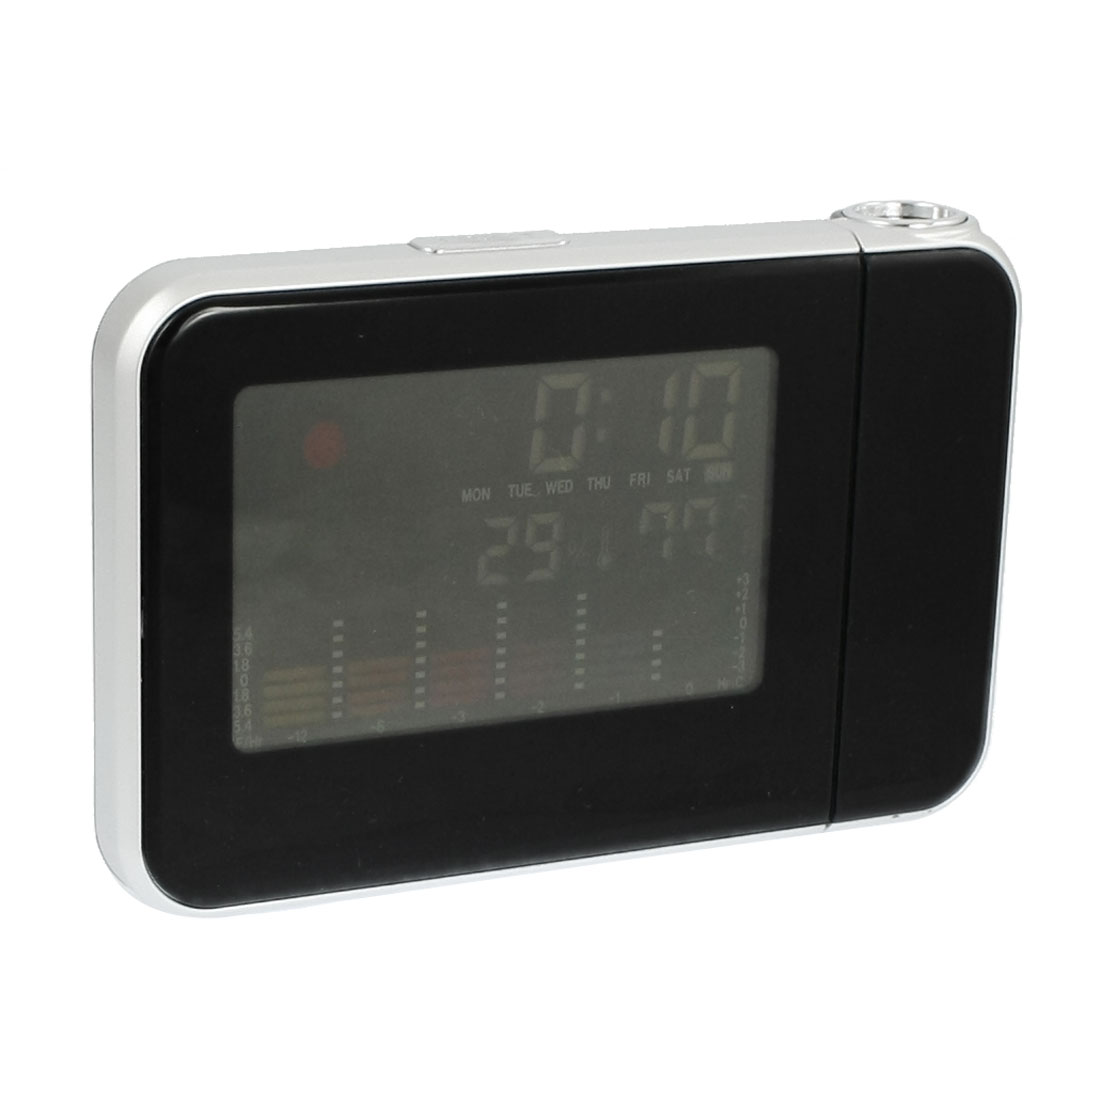 Multifunction Digital LCD Projection Clock Alarm Calendar Weather Forecast Station Humidity